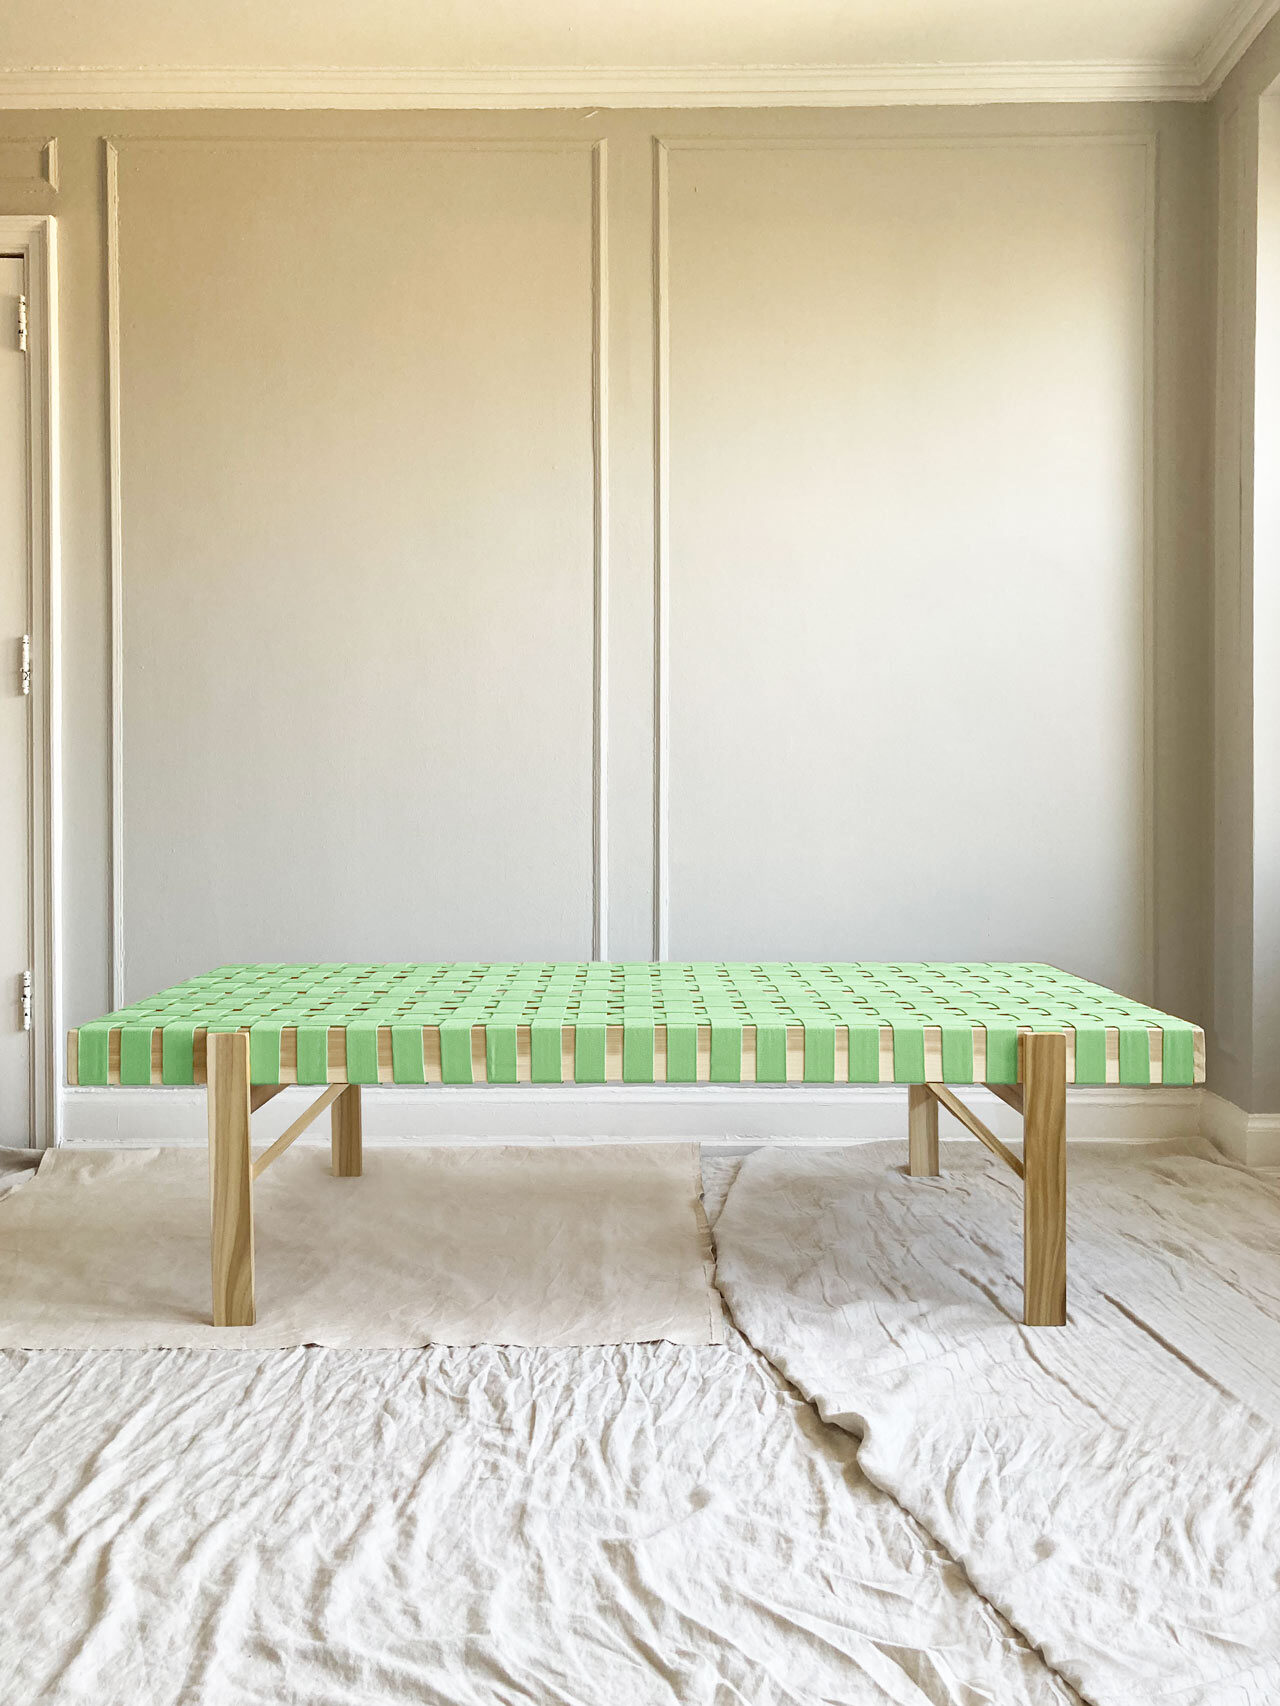 Simple Joinery Cotton Strap Daybed by Ian Anderson